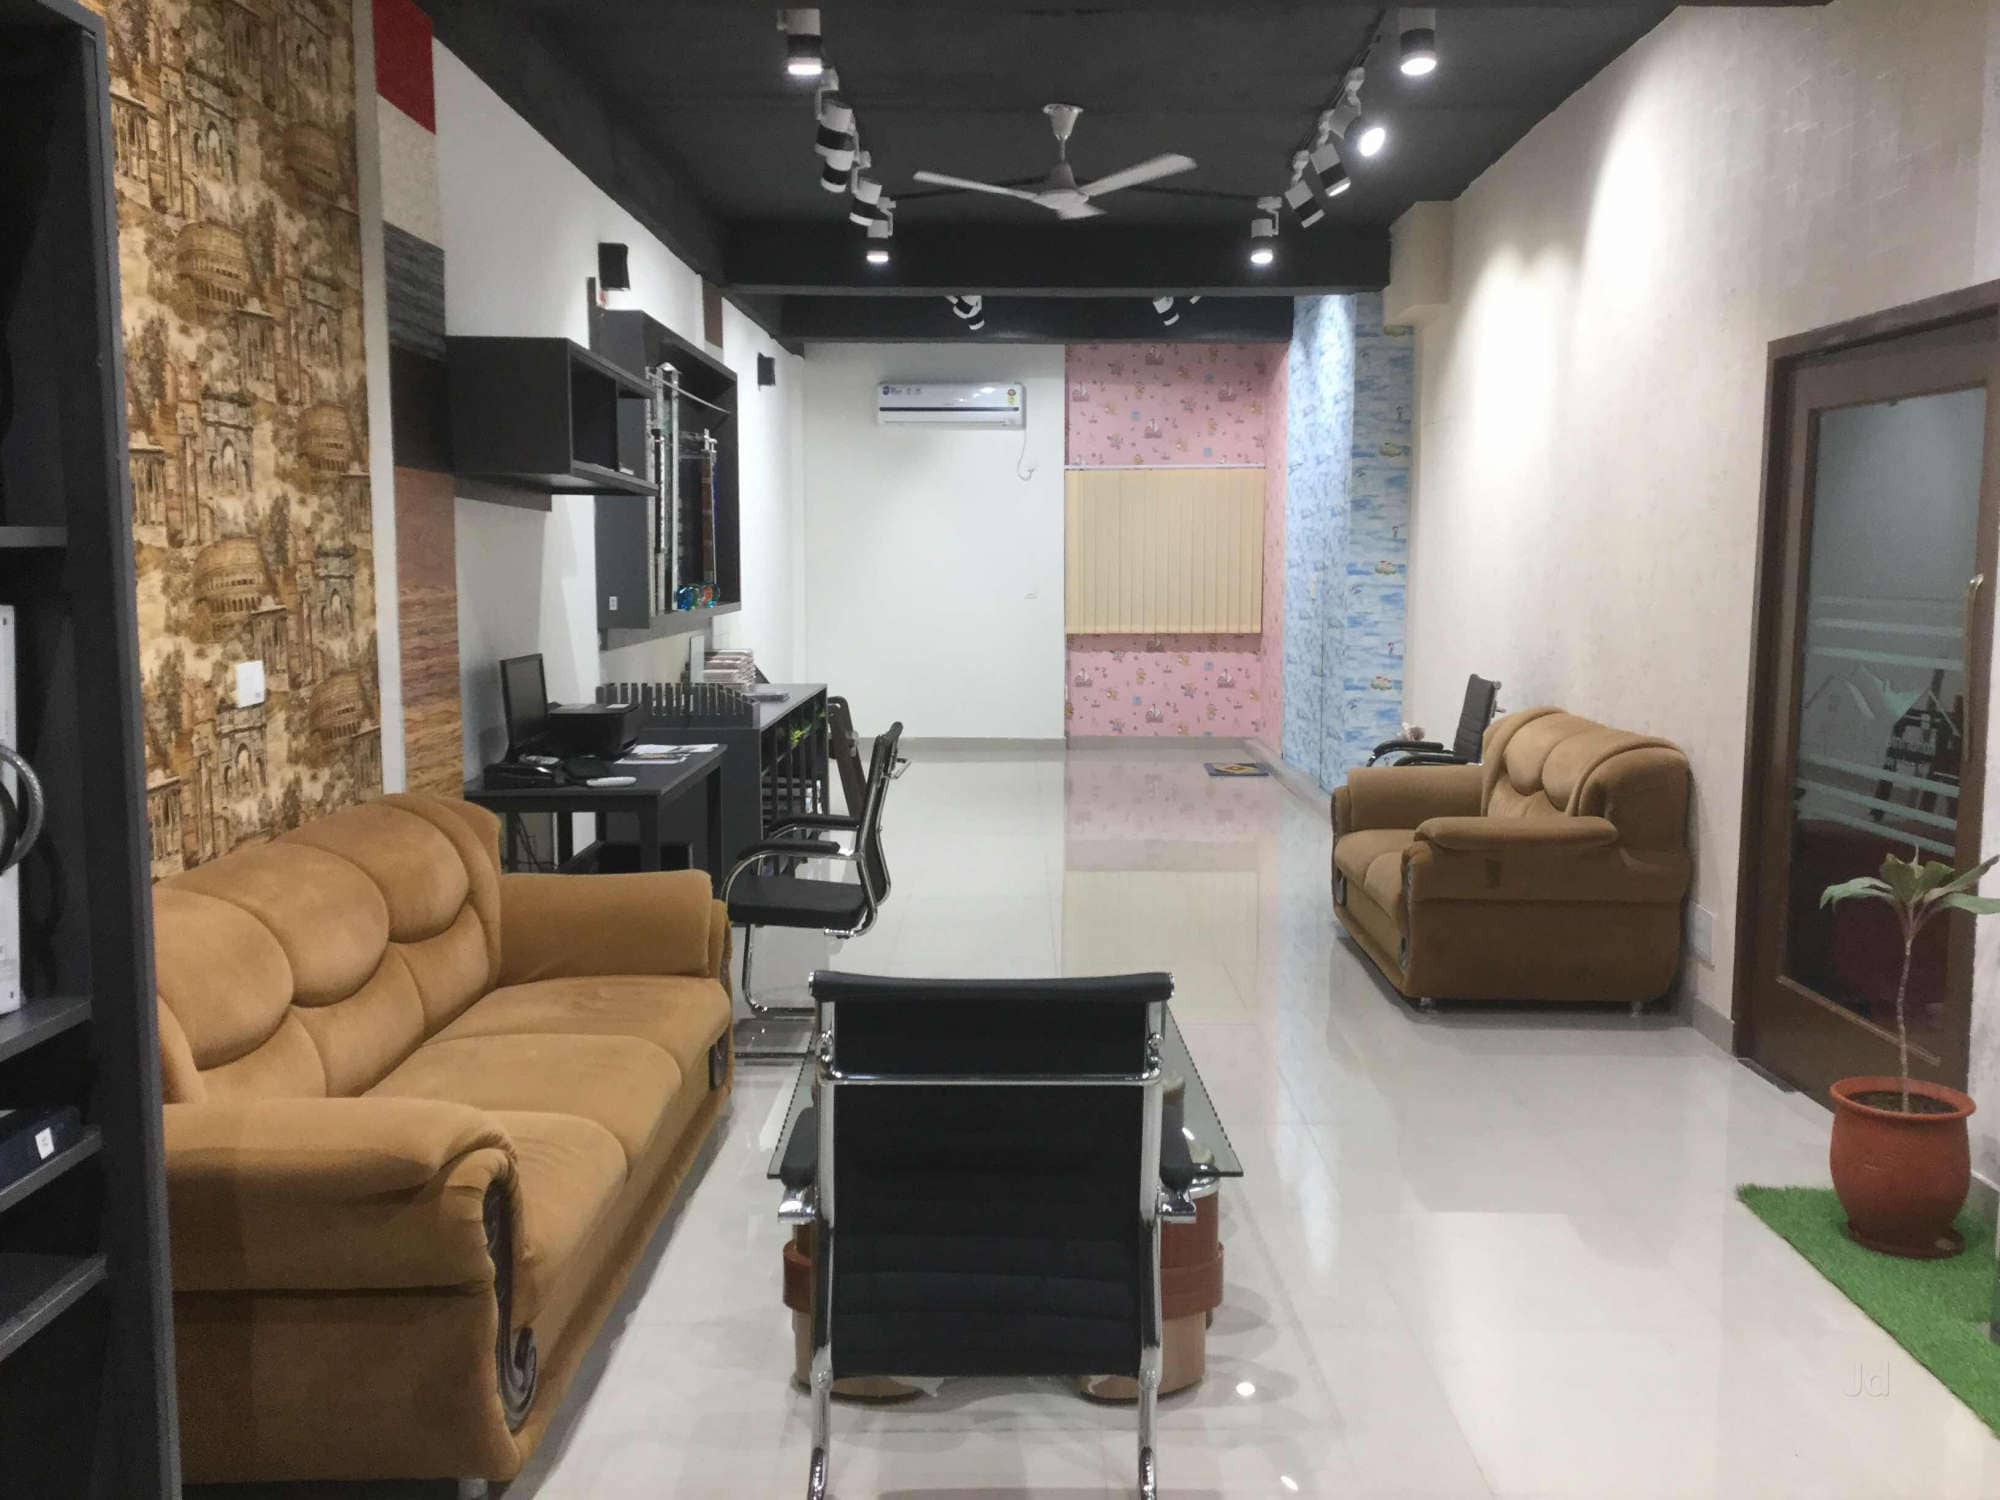 Top F F Wall Paper Dealers In Chandigarh Sector 28b Best F F Wall Paper Dealers Chandigarh Justdial